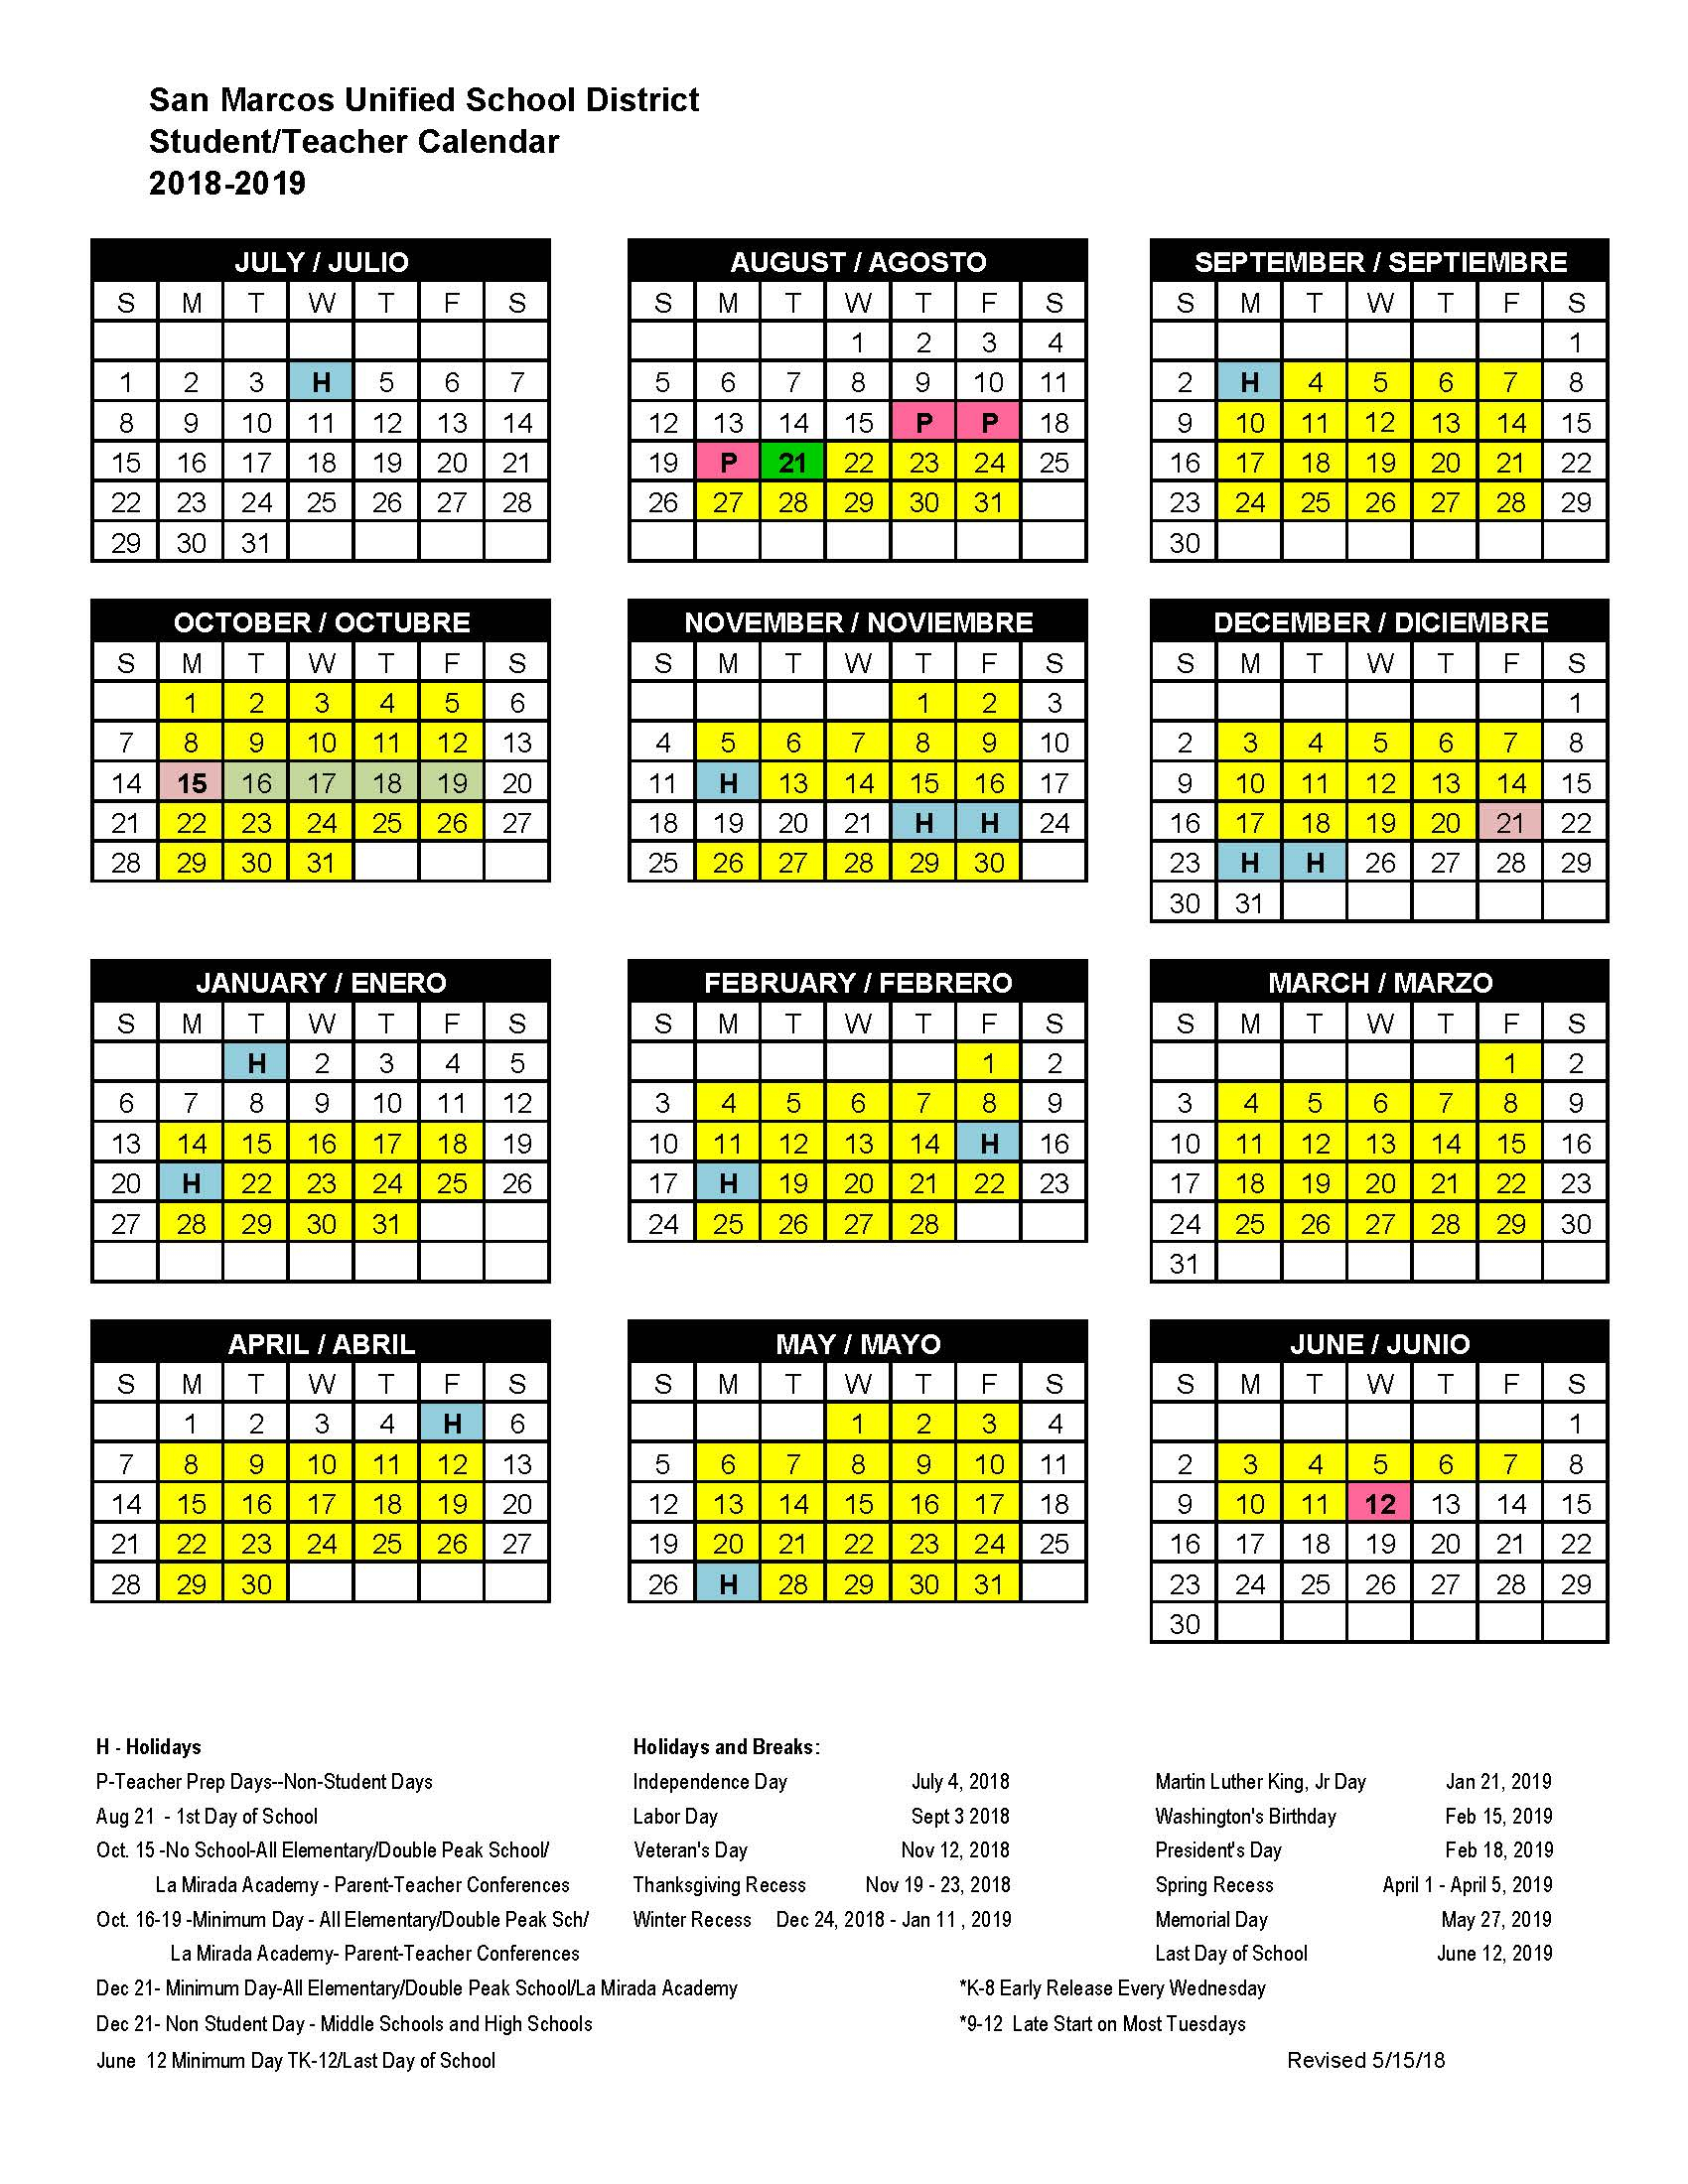 School Calendar - San Marcos High School in Paloma High School Menifee Year School Calendar